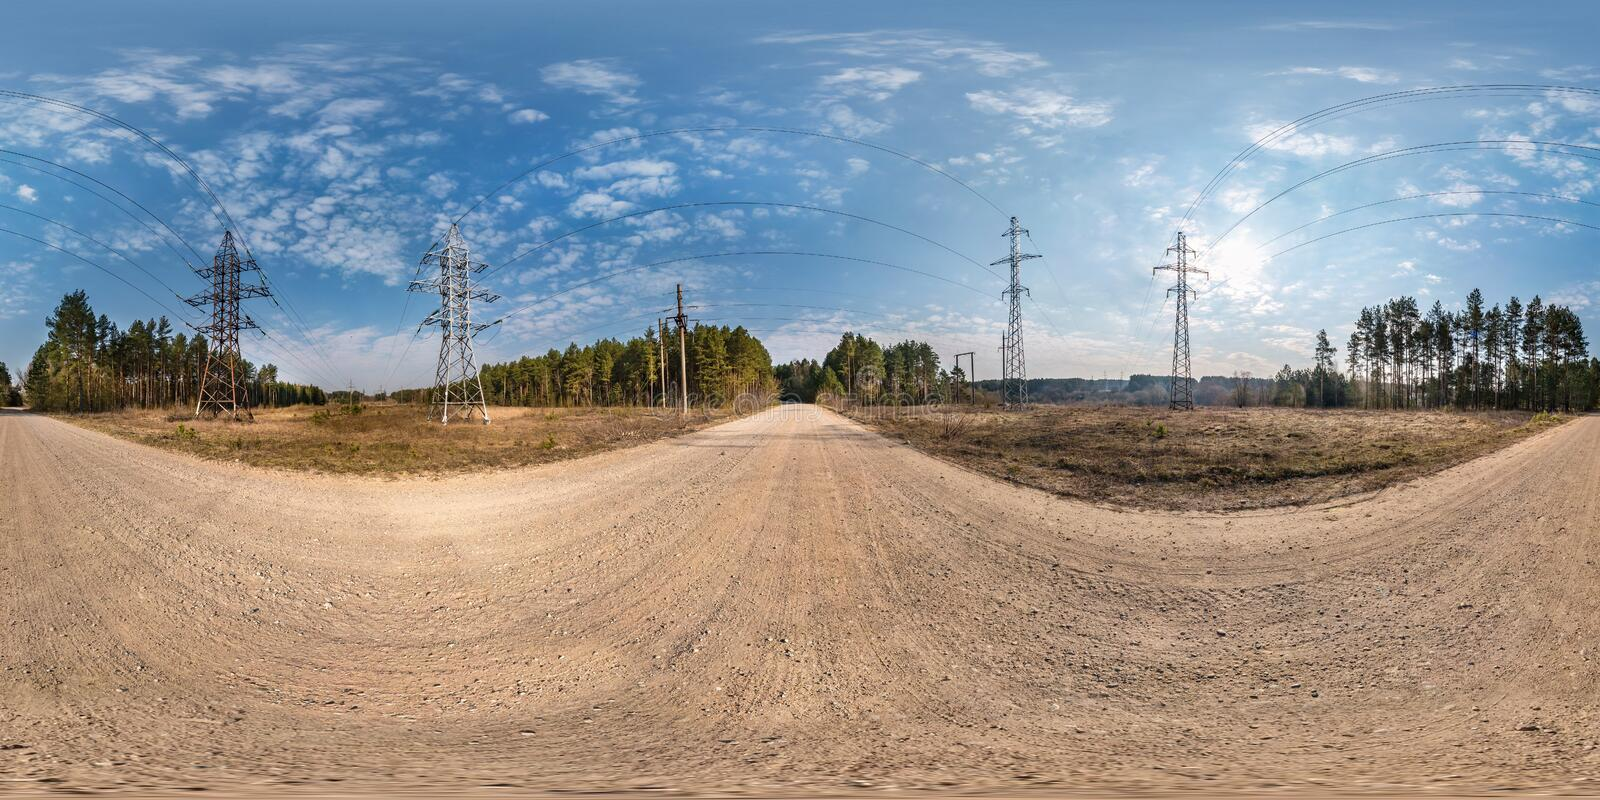 Full seamless spherical hdri panorama 360 degrees angle view near high voltage electric pylon towers on gravel road in royalty free stock images